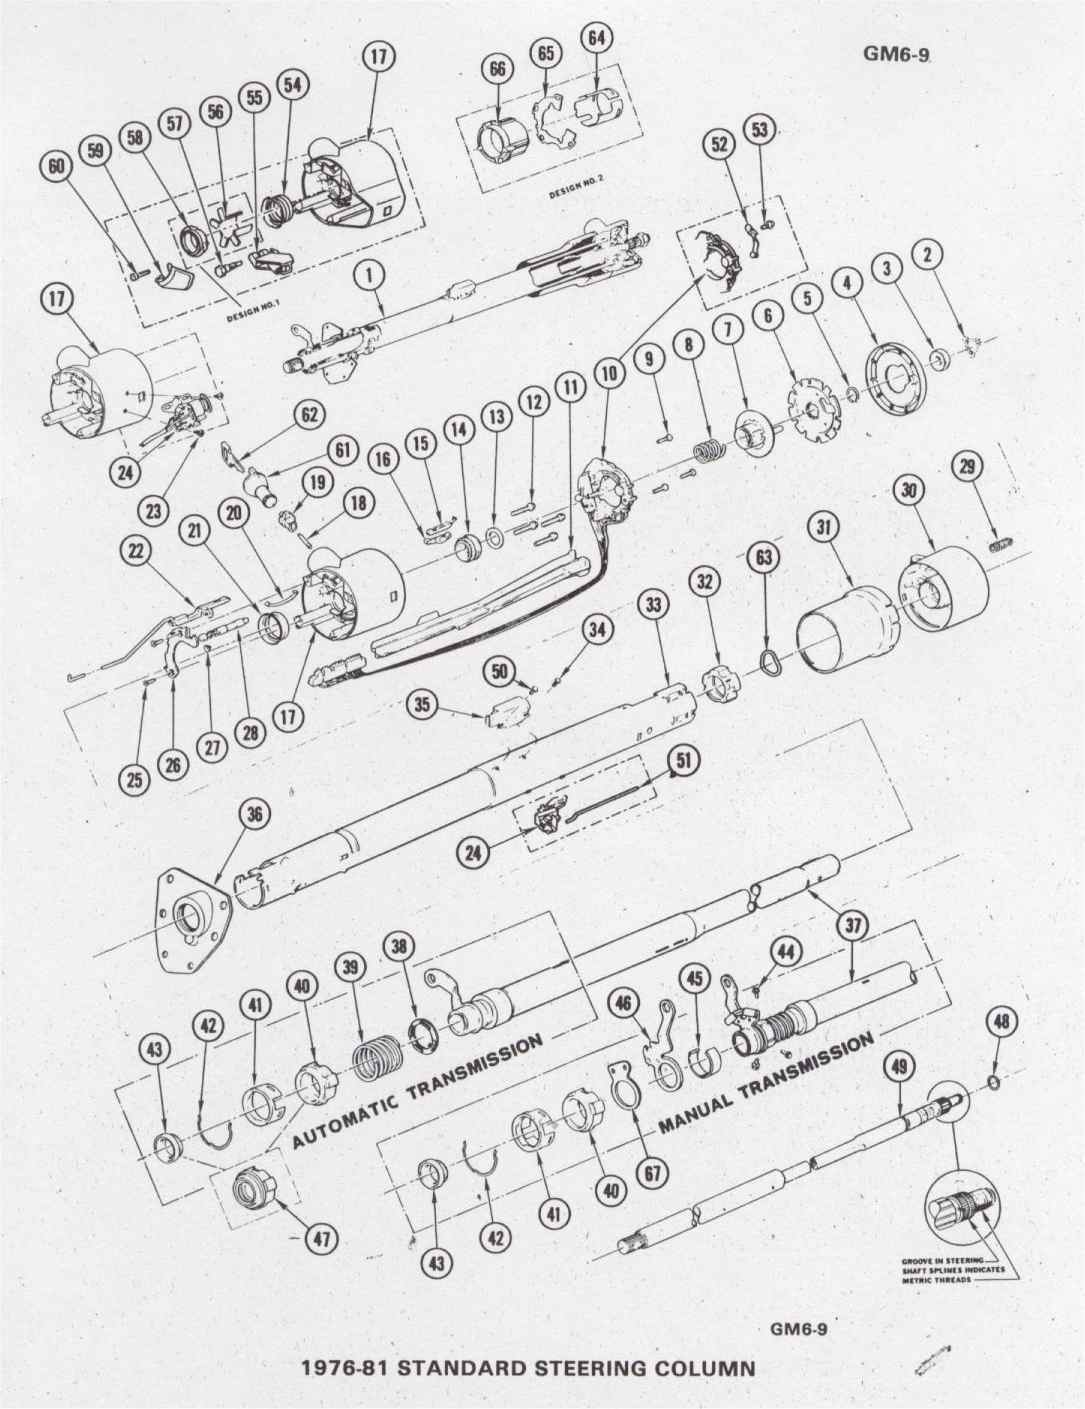 1973 camaro pdm assembly service info chevy truck steering parts diagram 1970 gm steering column diagram